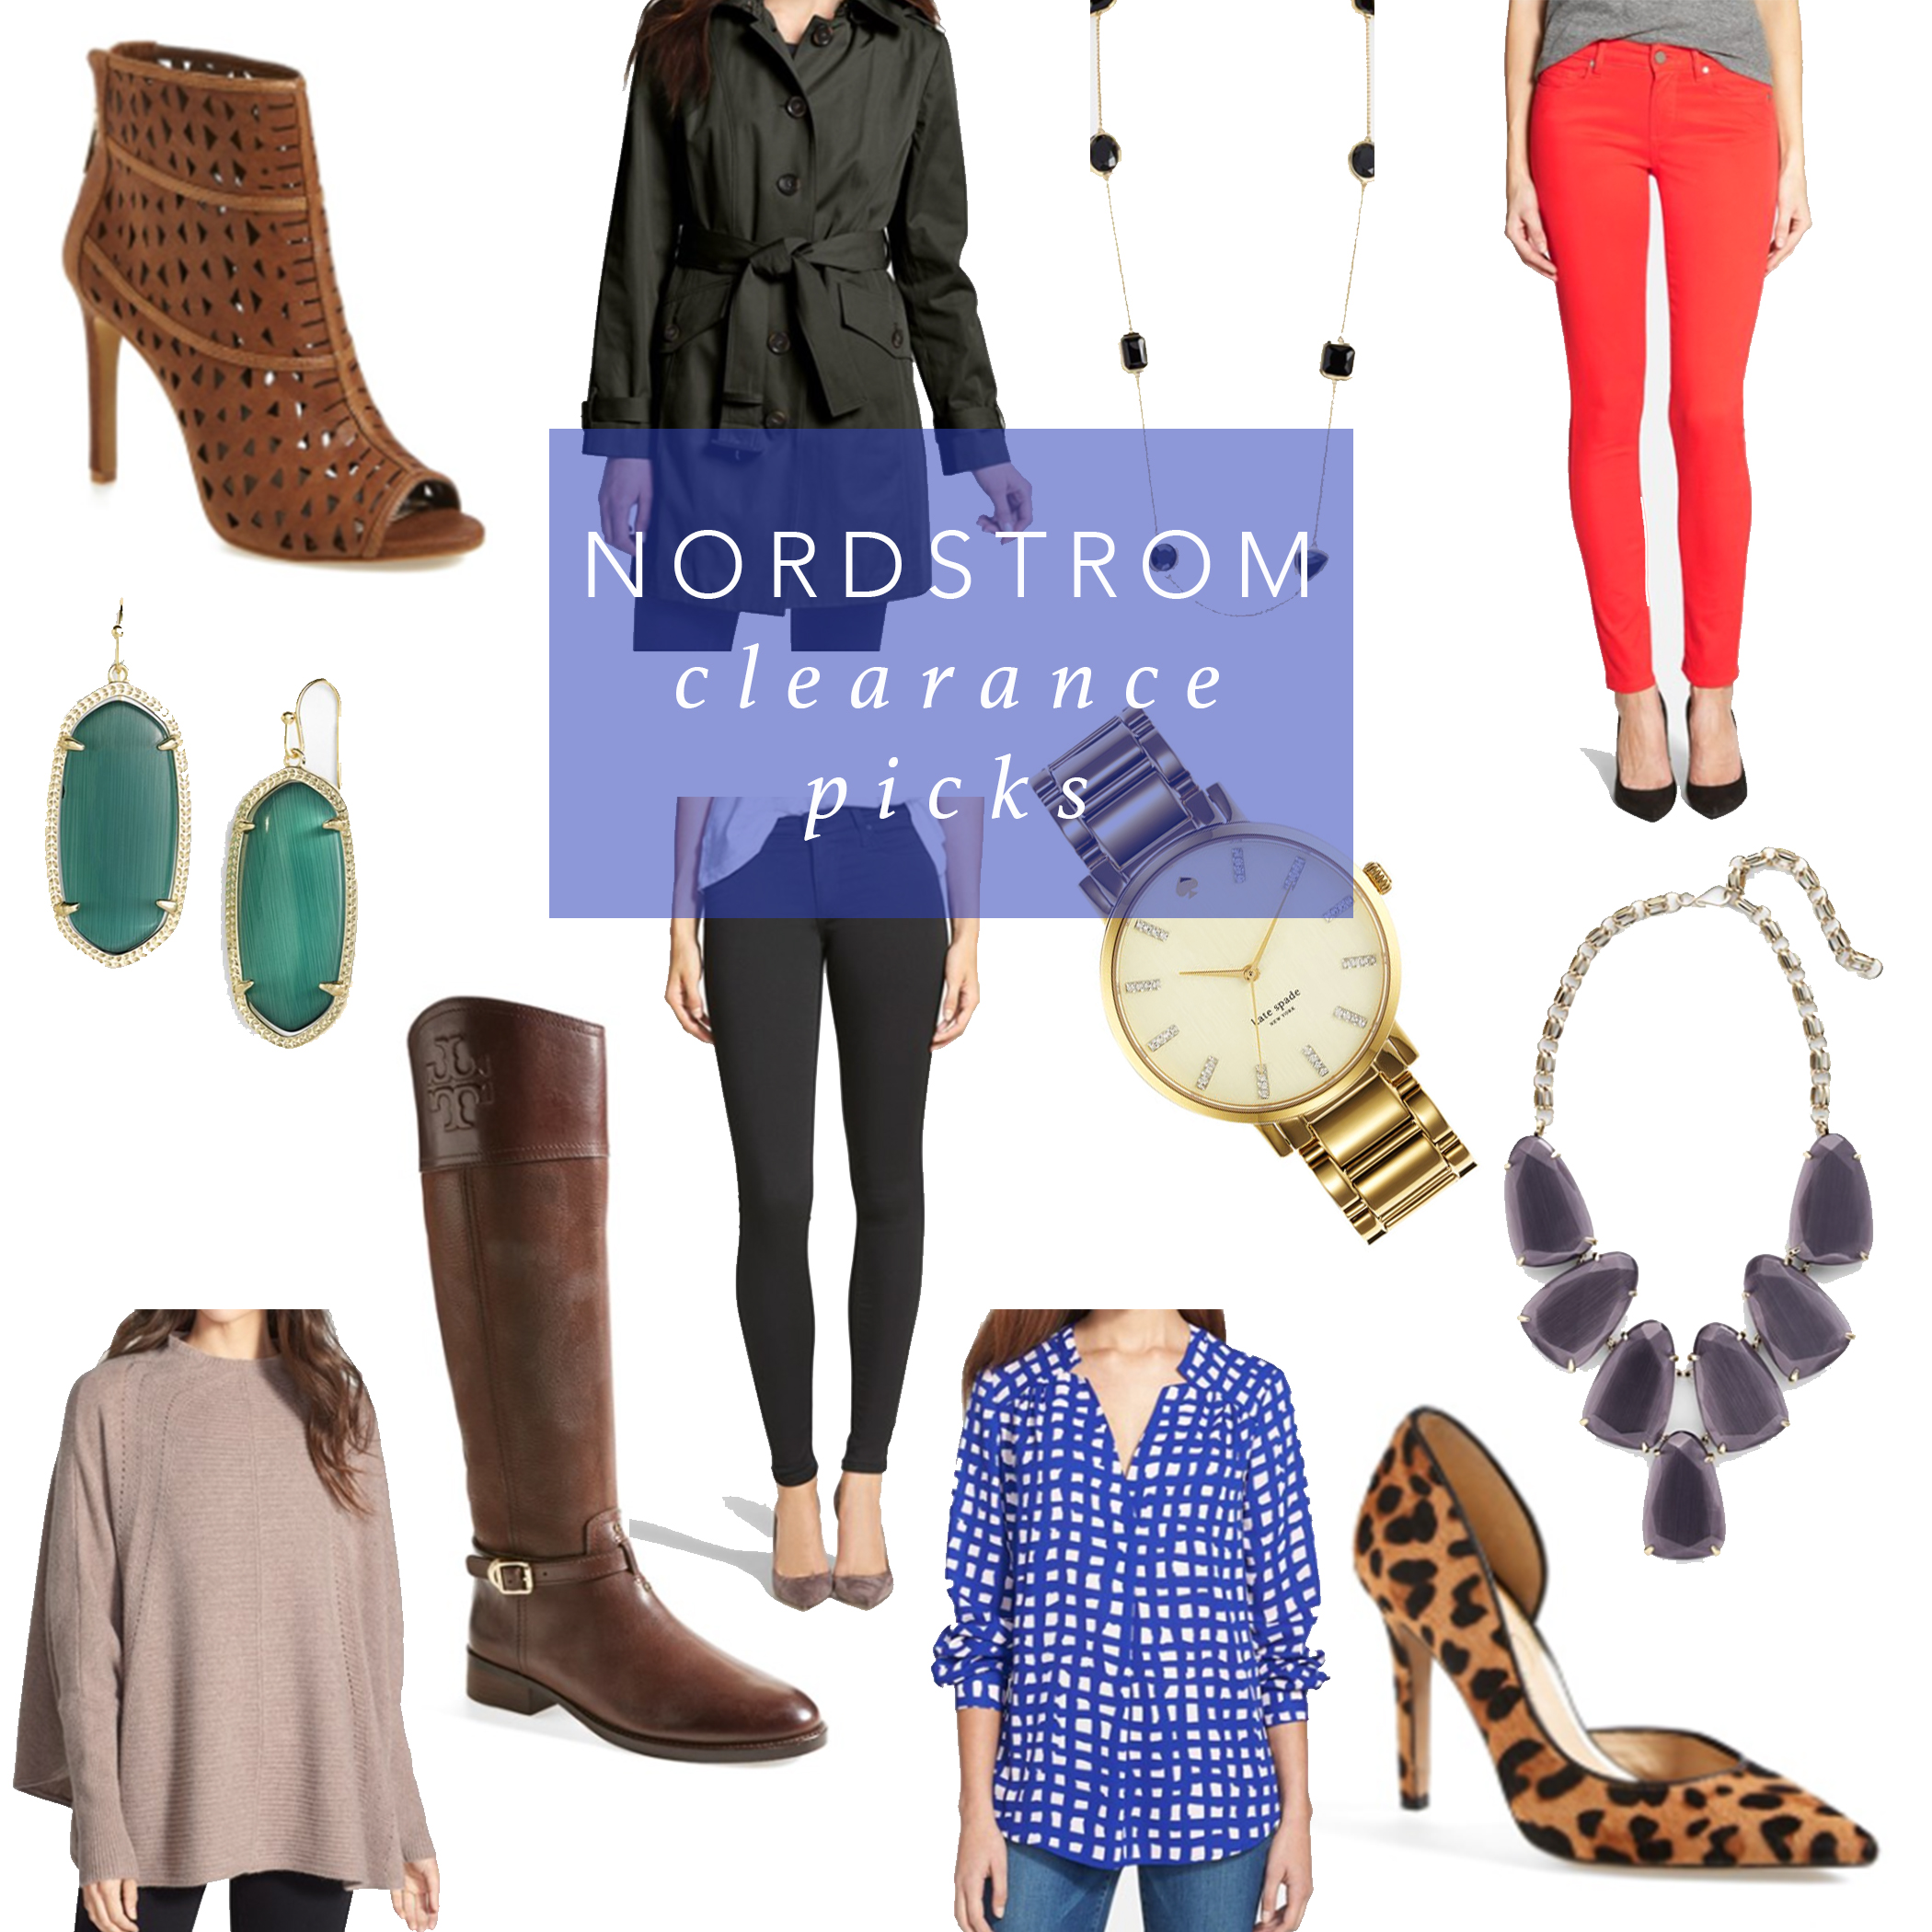 nordstrom clearance